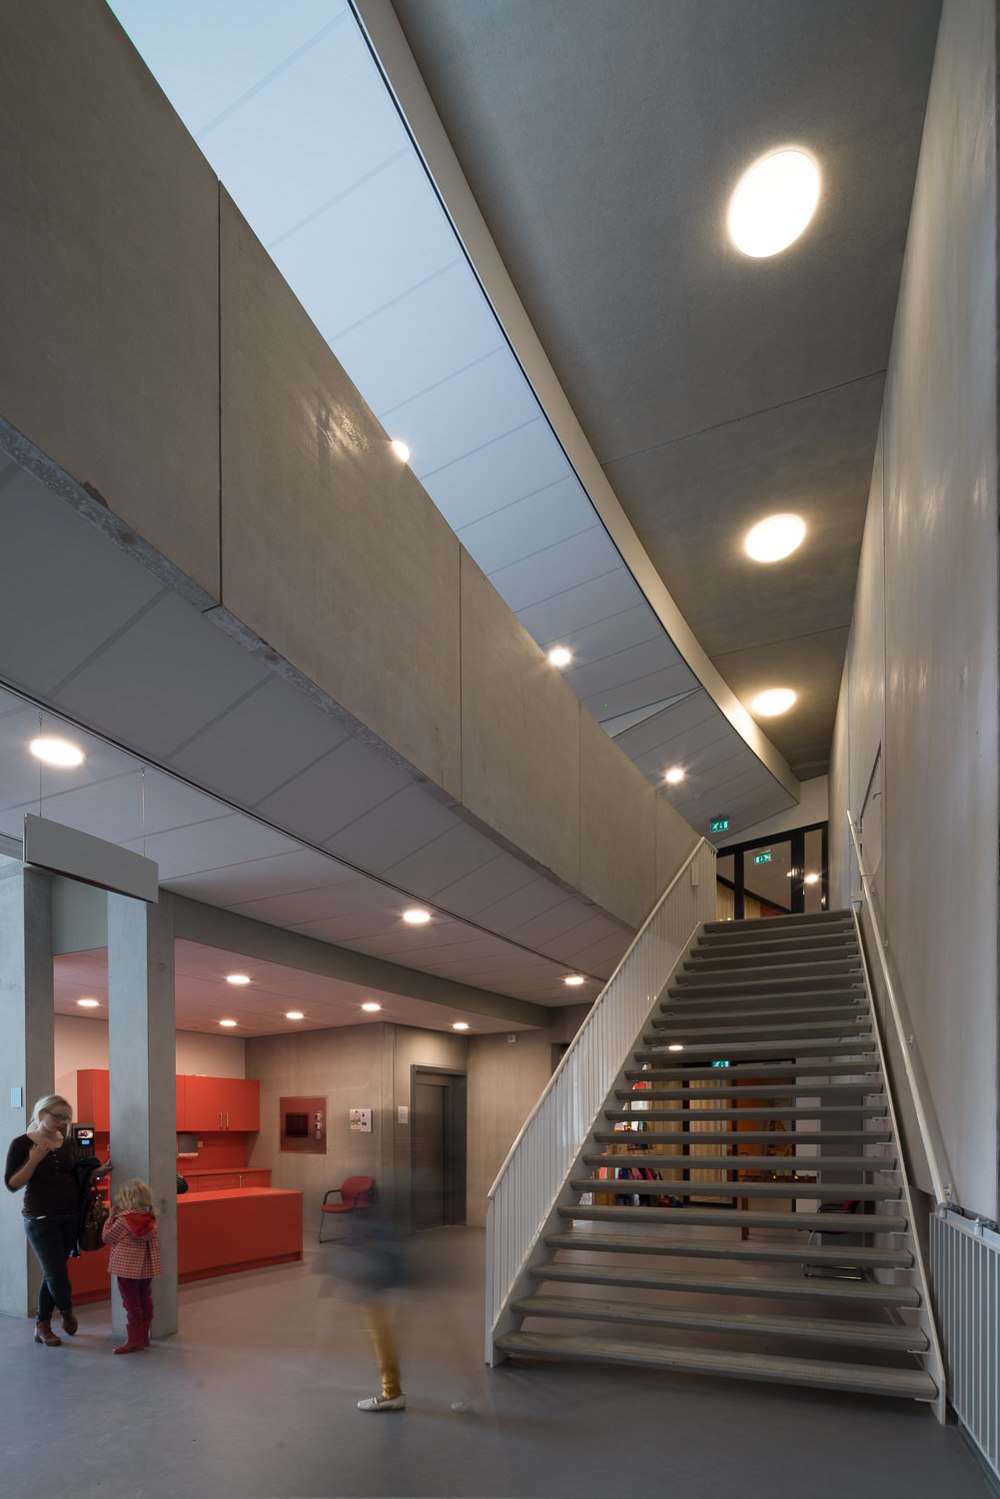 mark-hadden-architecture-photographer-architectuur-interieur-fotografie-london-amsterdam-team-4-zuidhorn-school-101.jpg